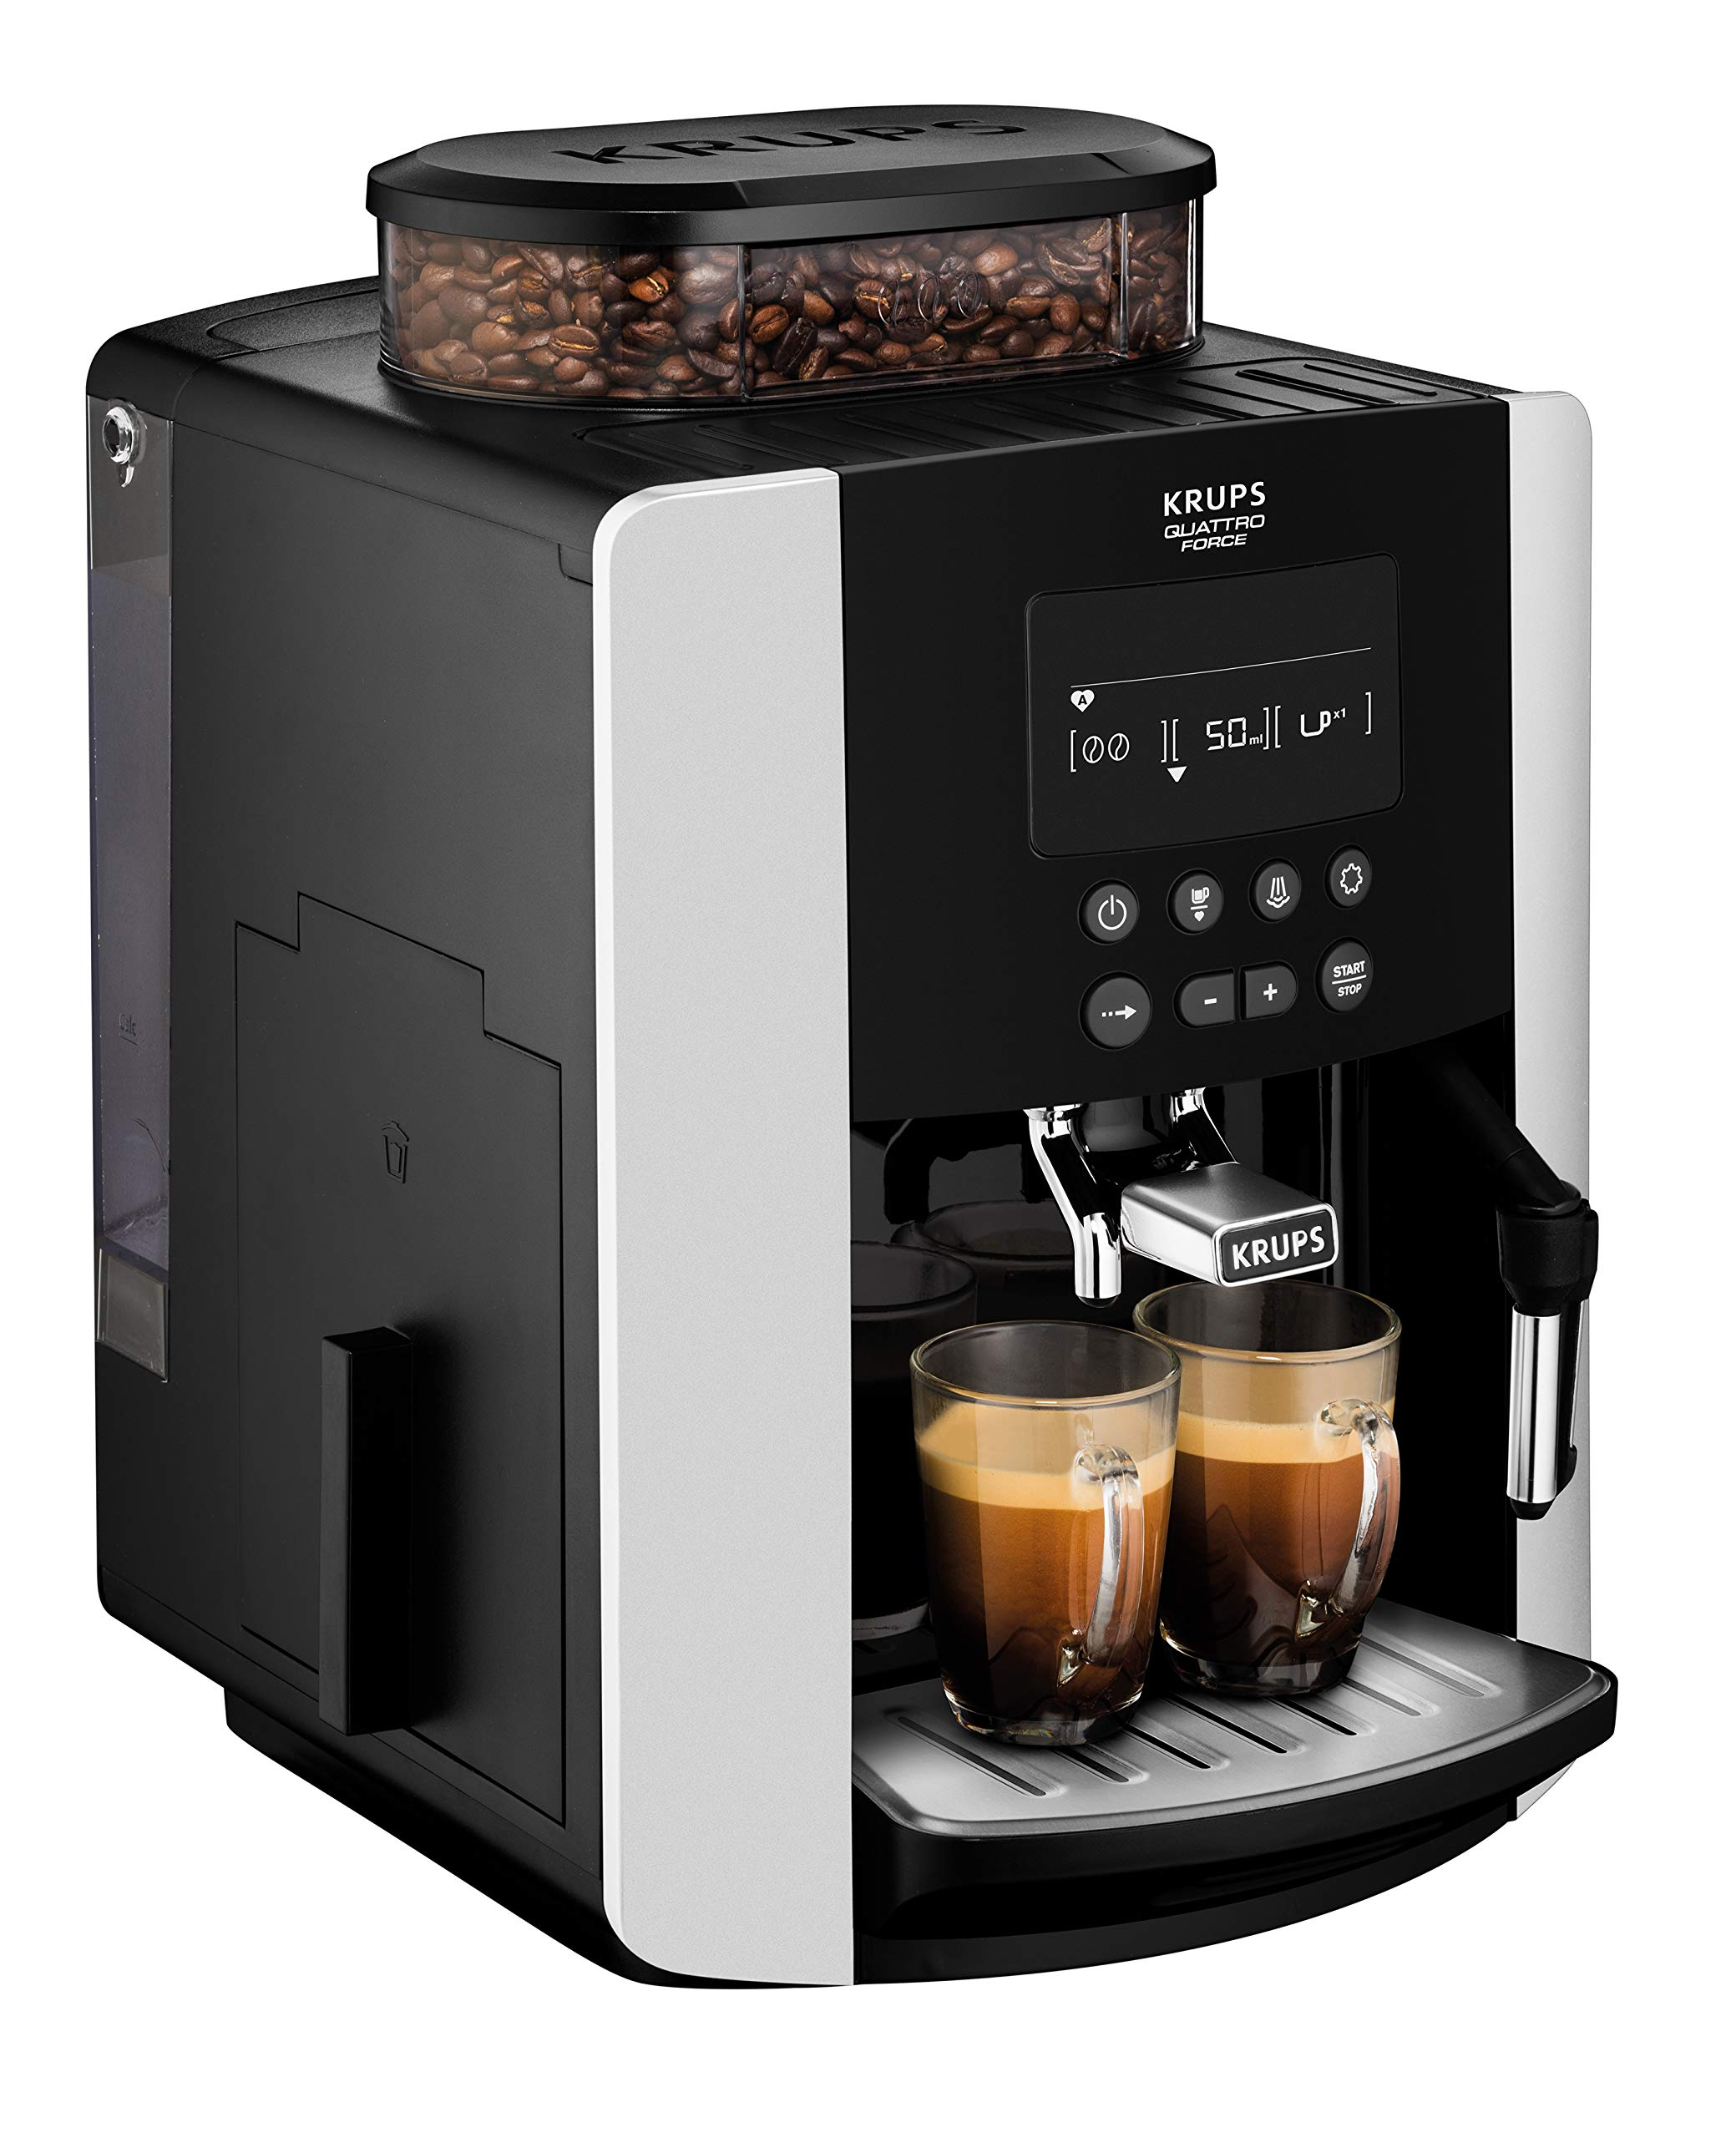 Krups-EA8178-Arabica-Display-Quattro-Force-Kaffeevollautomat-1450-Watt-Wassertankkapazitt-18l-Pumpendruck-15-Bar-LCD-Display-schwarzcarbon-optik